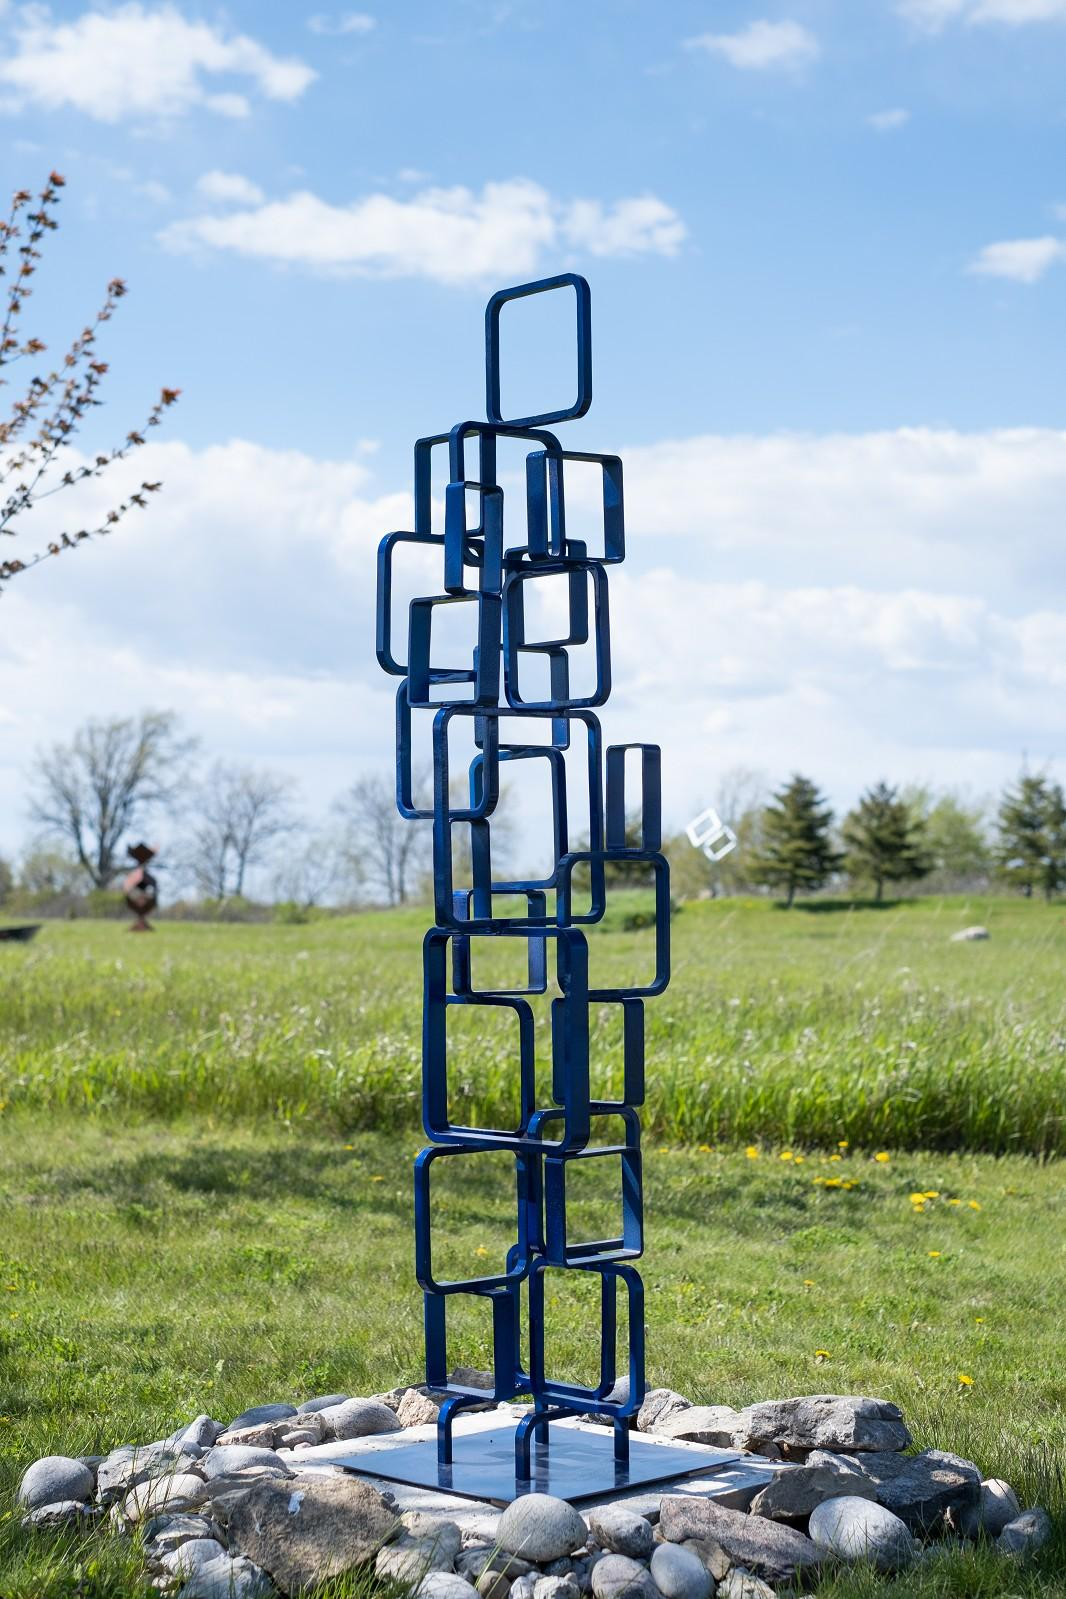 Frame - tall, blue, outdoor, painted steel, geometric abstract sculpture